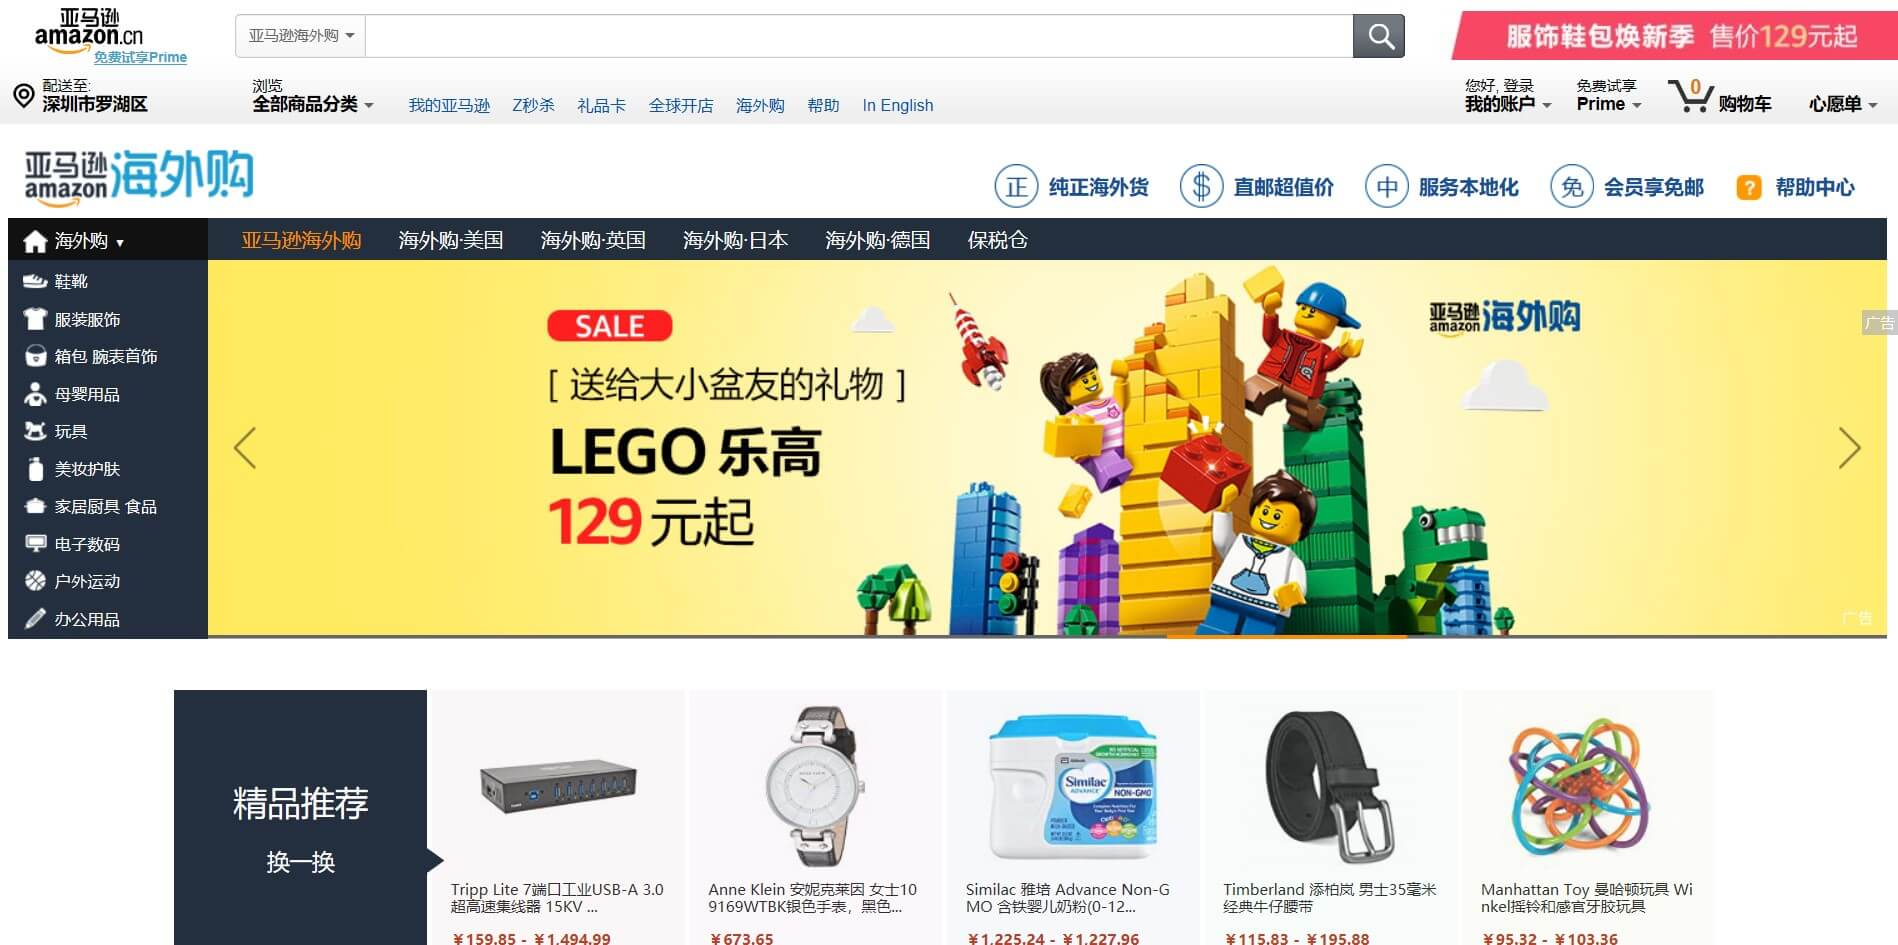 amazon china front page.jpg